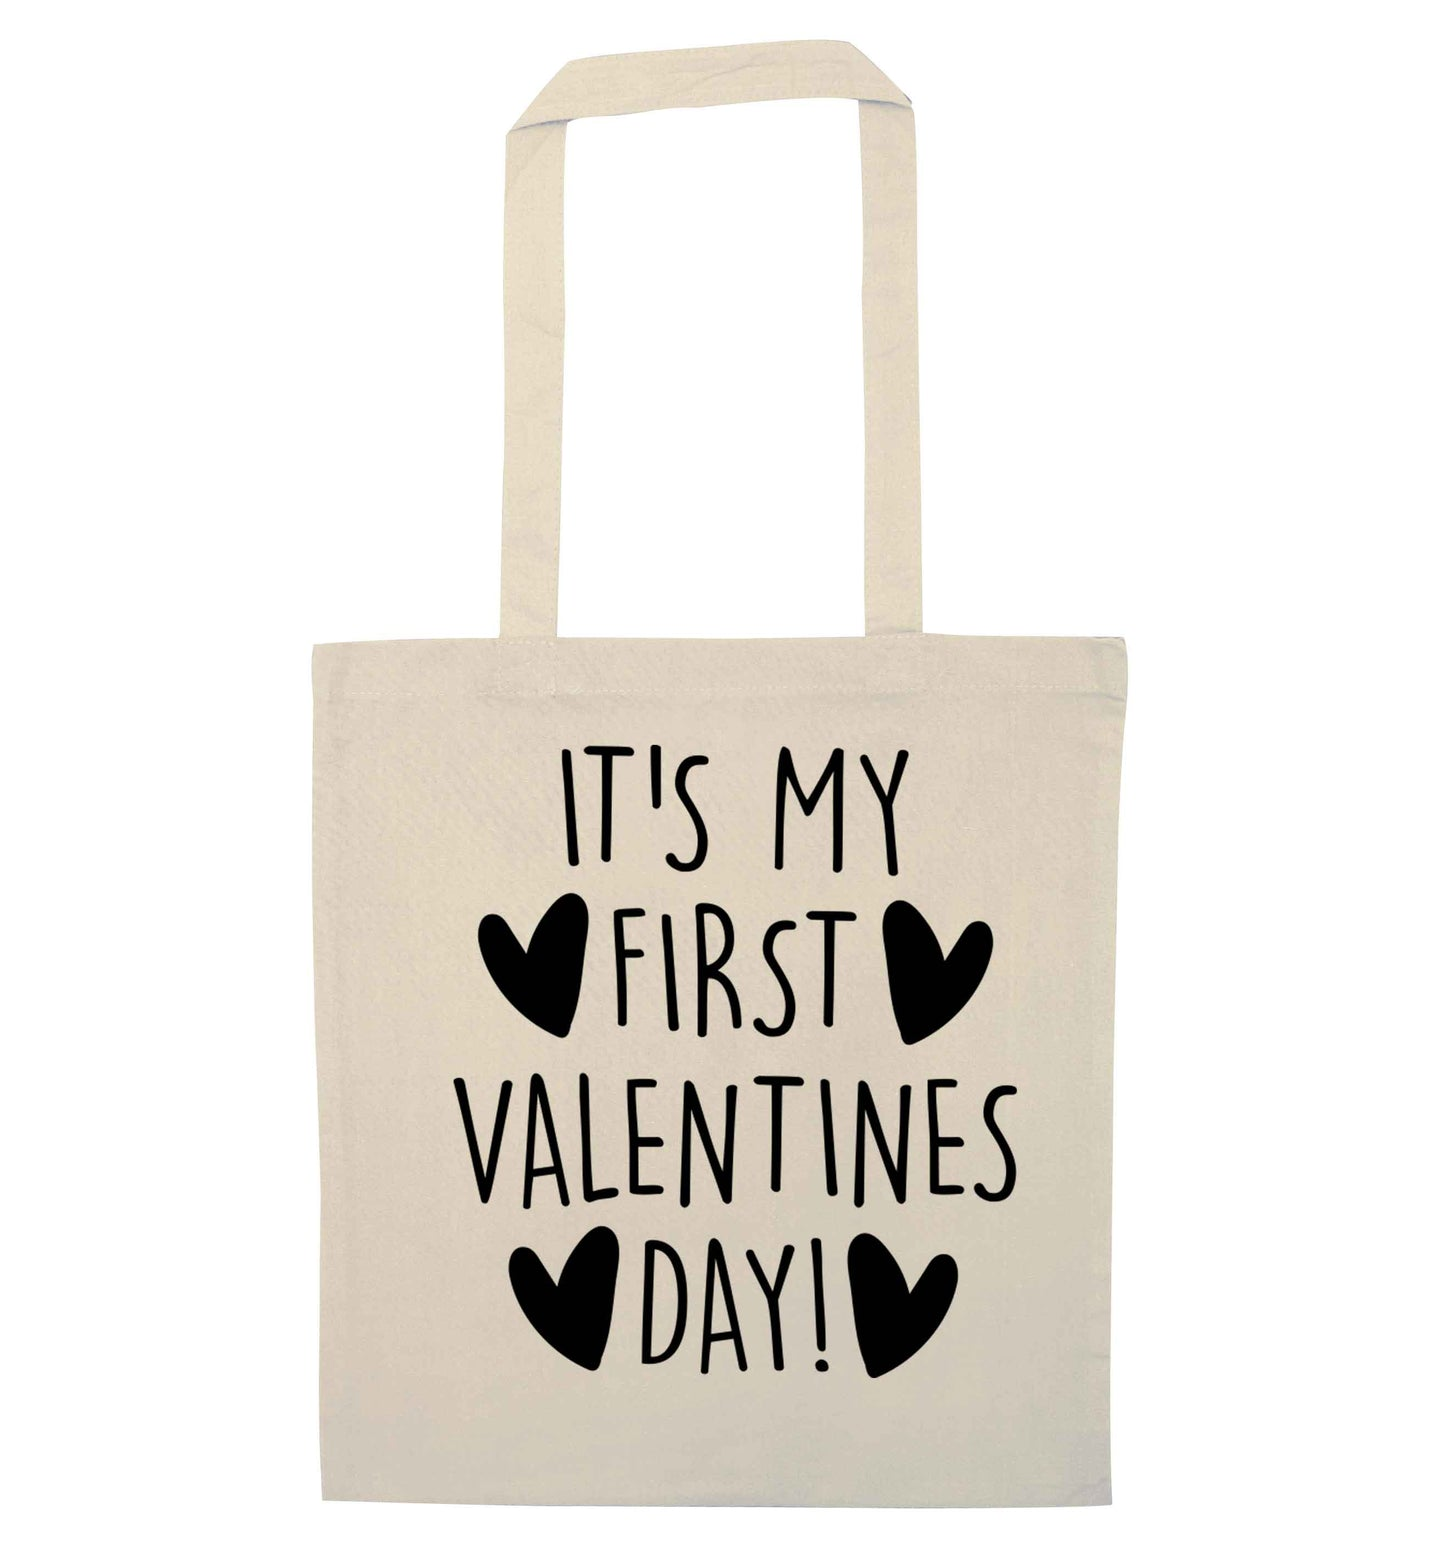 It's my first valentines day! natural tote bag